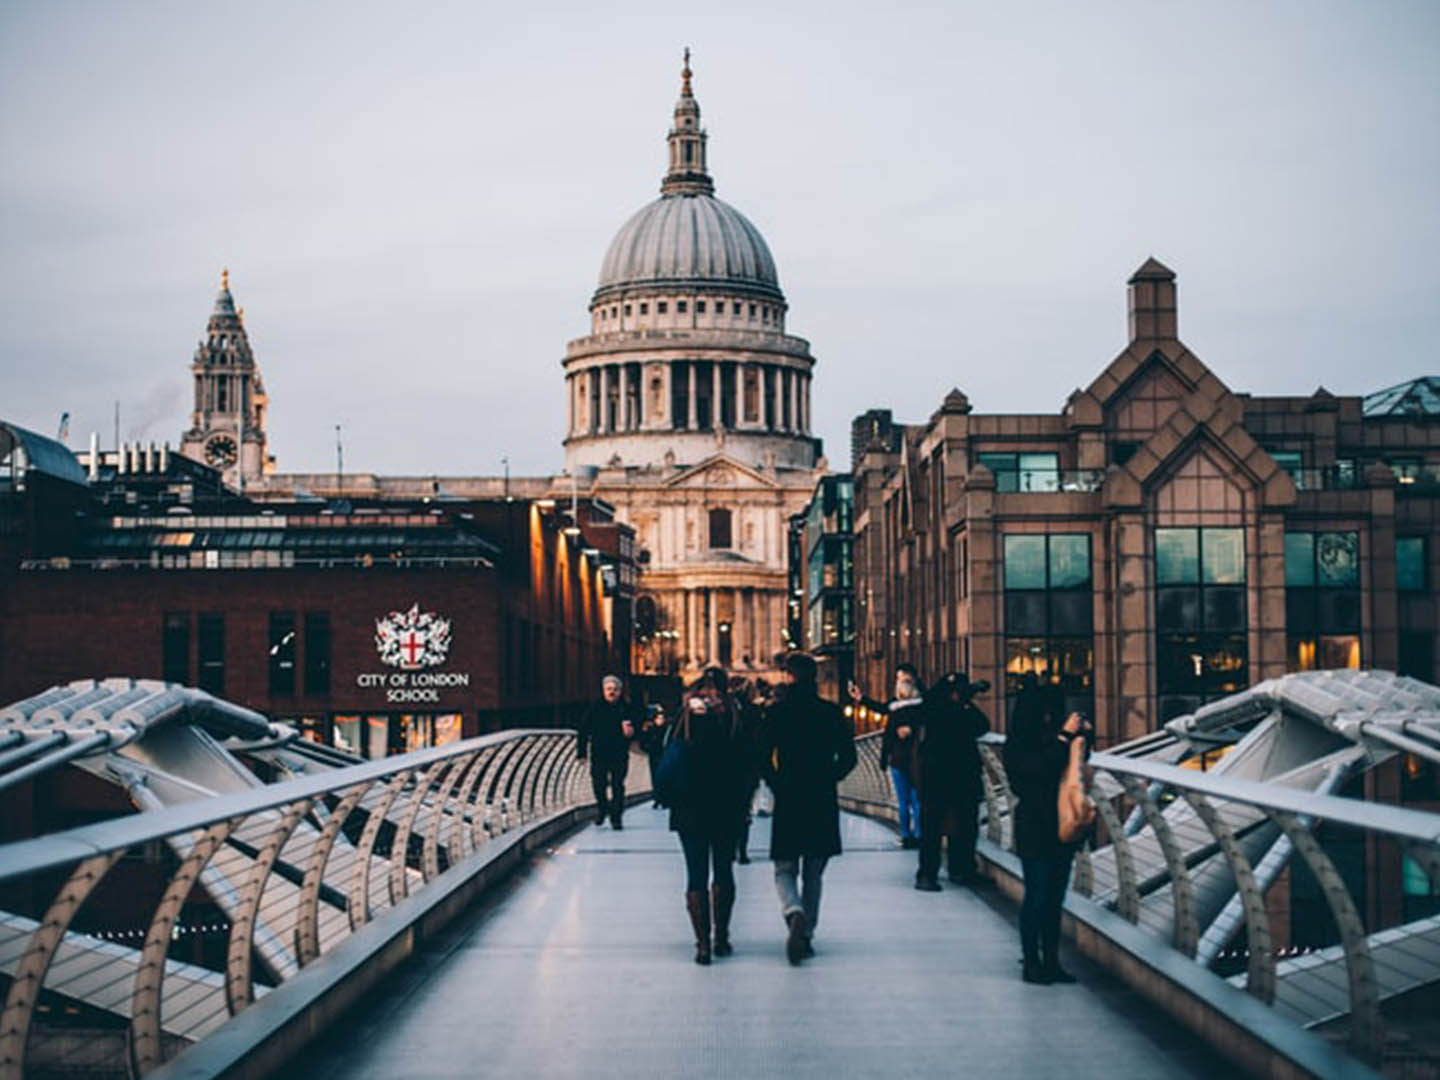 City sets sights high on 'reimagined' Square Mile